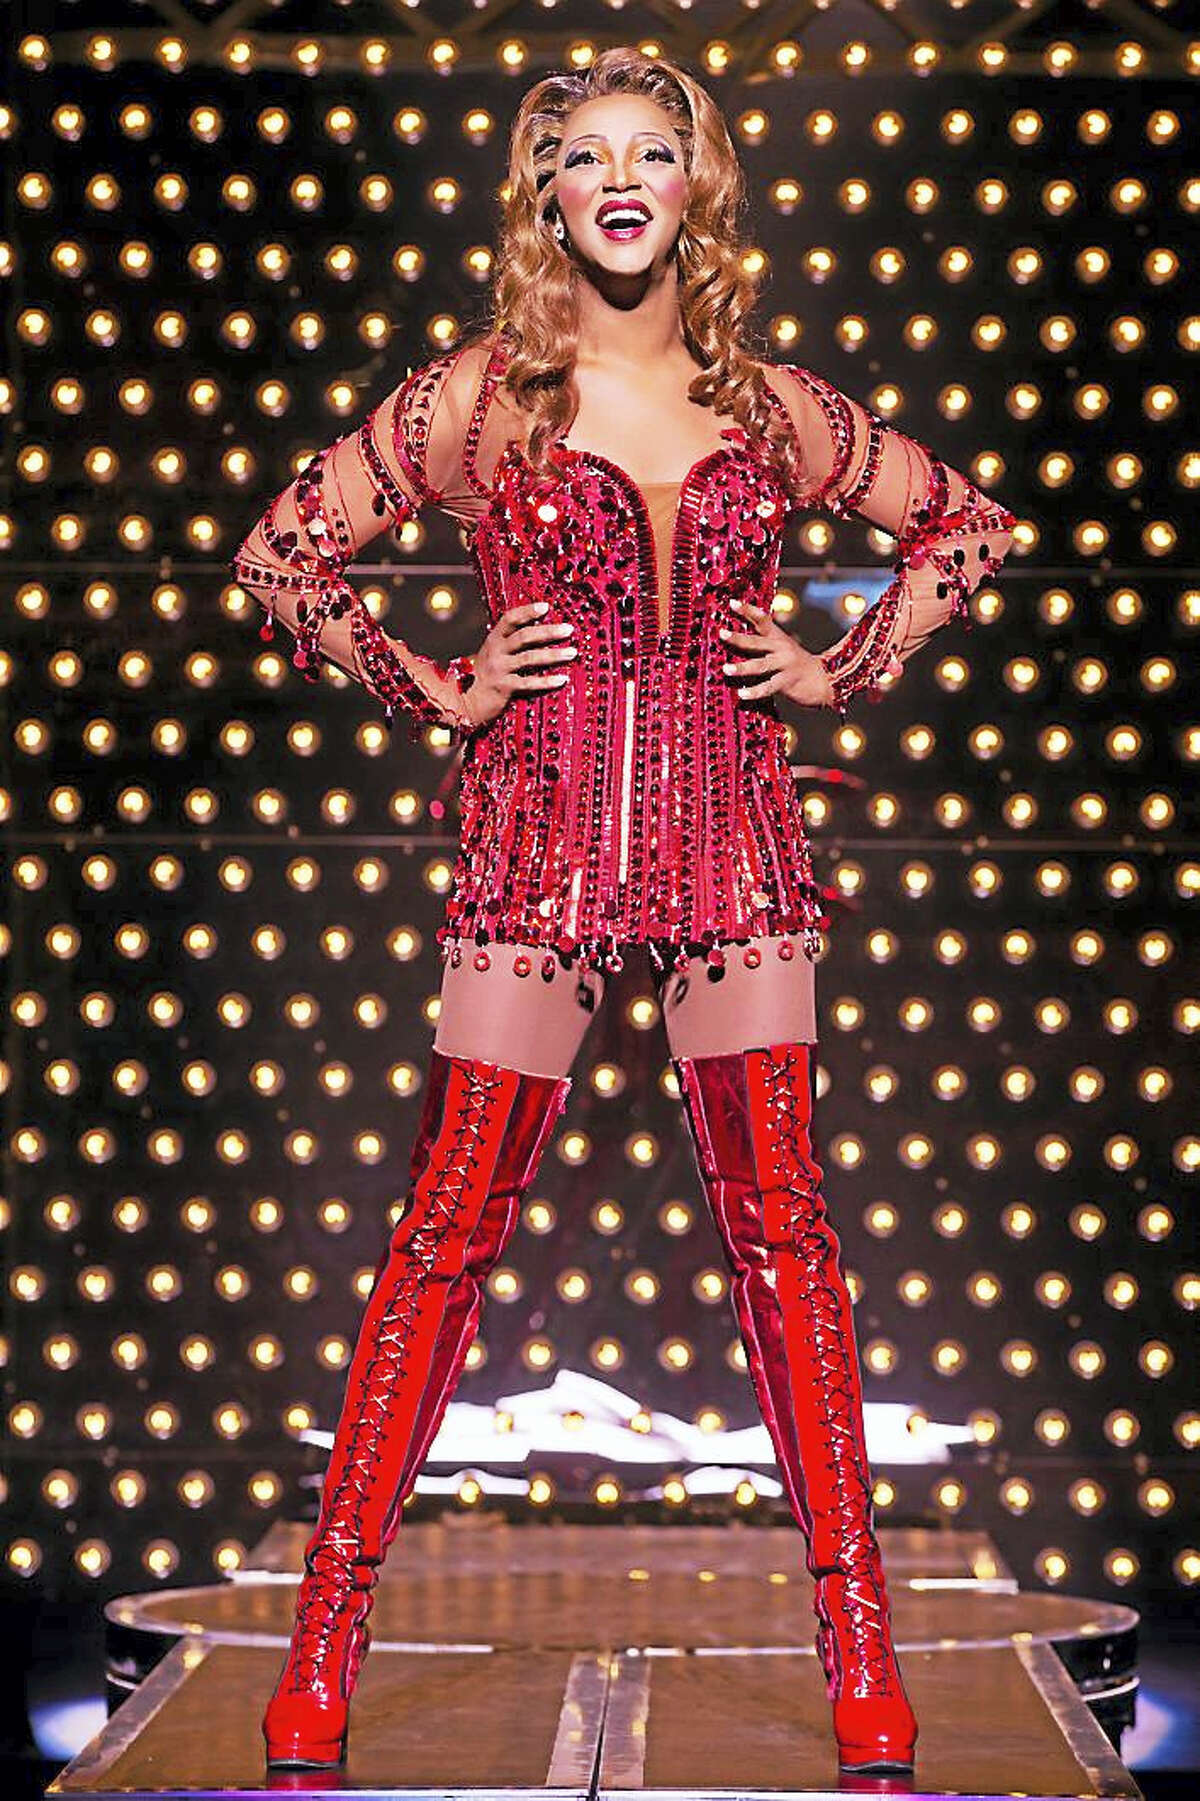 Contributed photo J. Harrison Ghee stars the national tour of Kinky Boots, which will include shows at the Palace Theater on Waterbury in December.